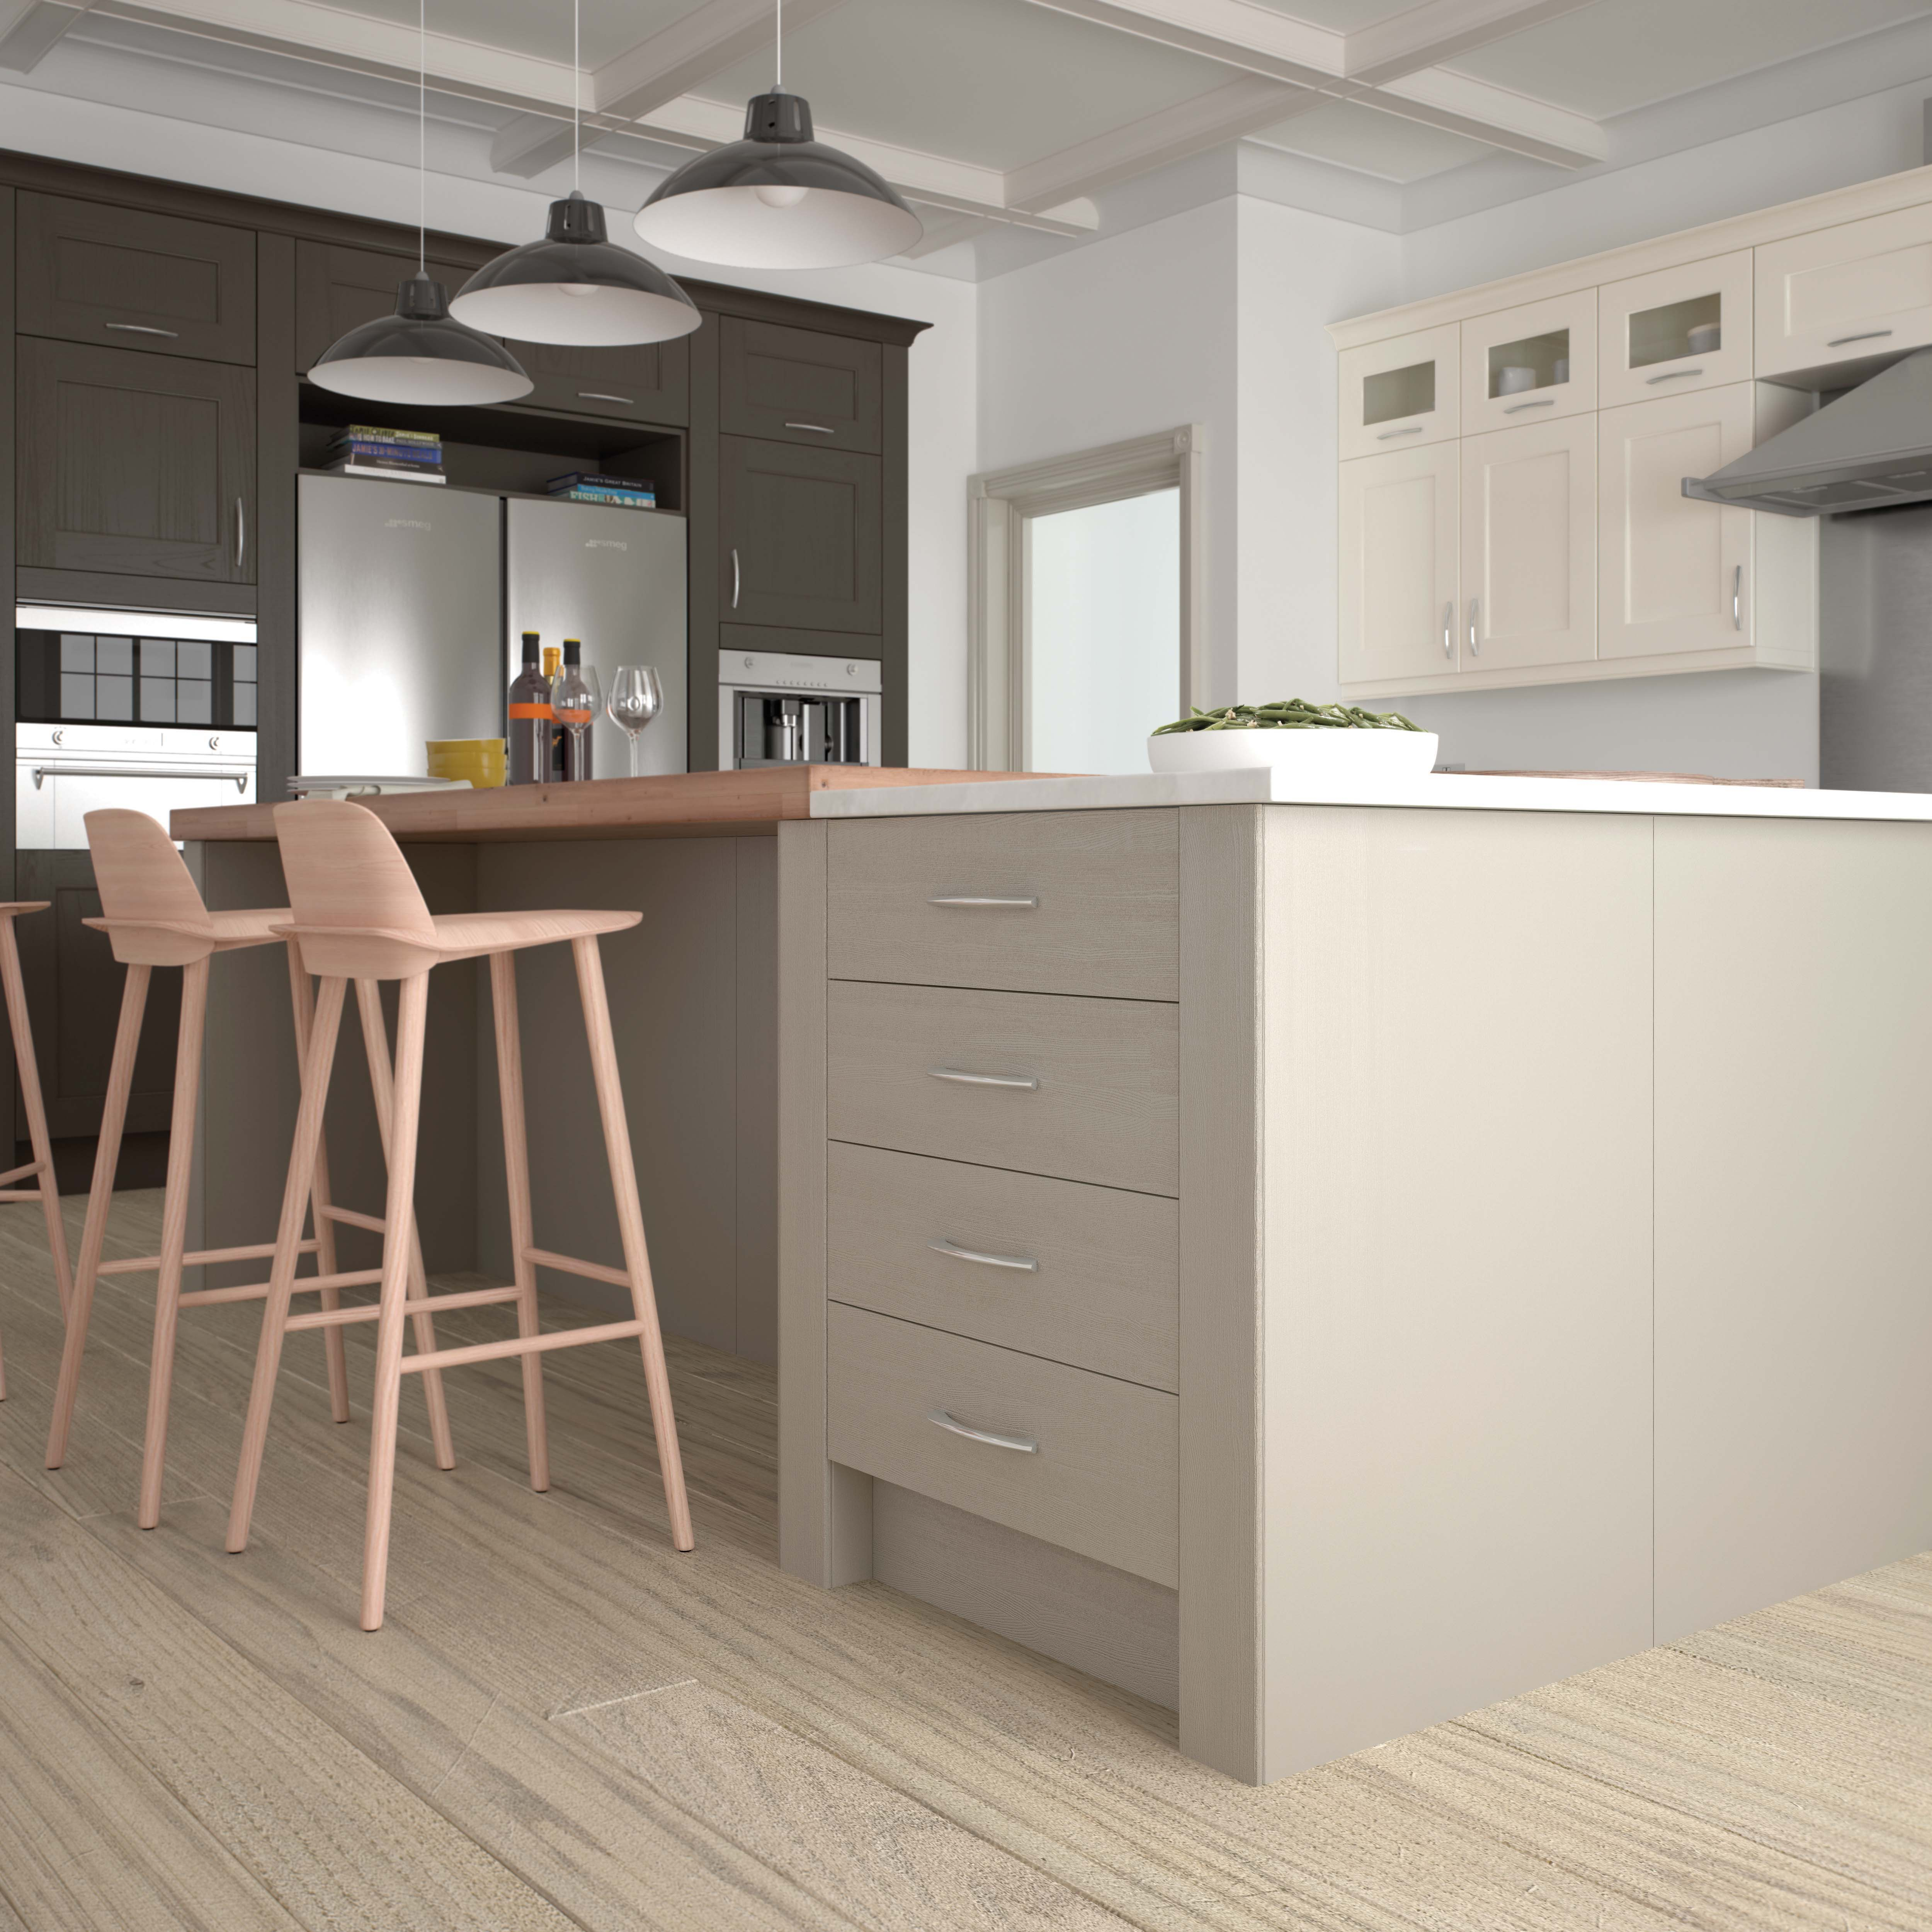 Purley kitchen Crestwood of Lymington